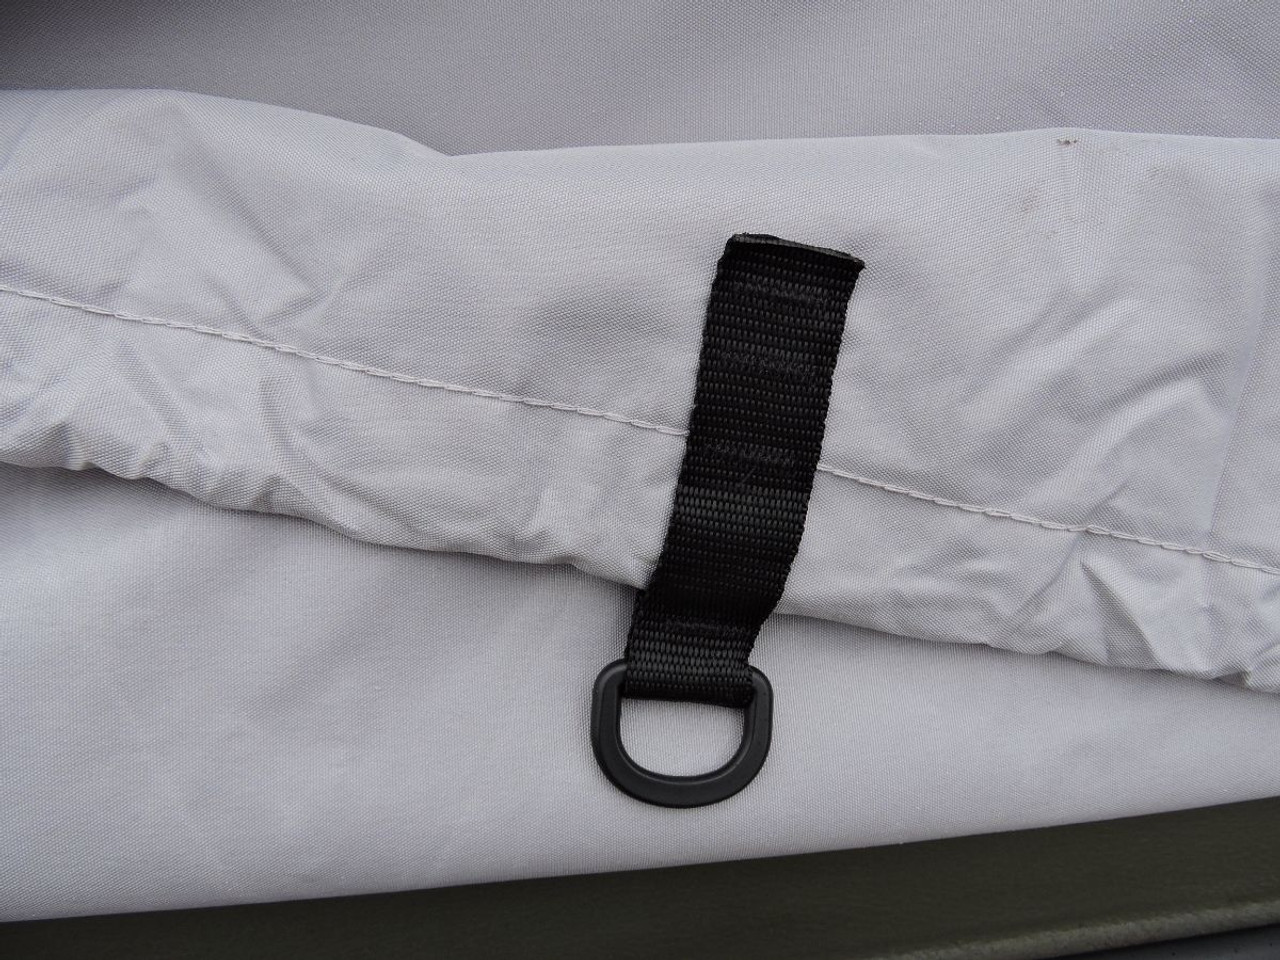 Venture XTV ARGO cover with strong elastic hem cord and tie downs